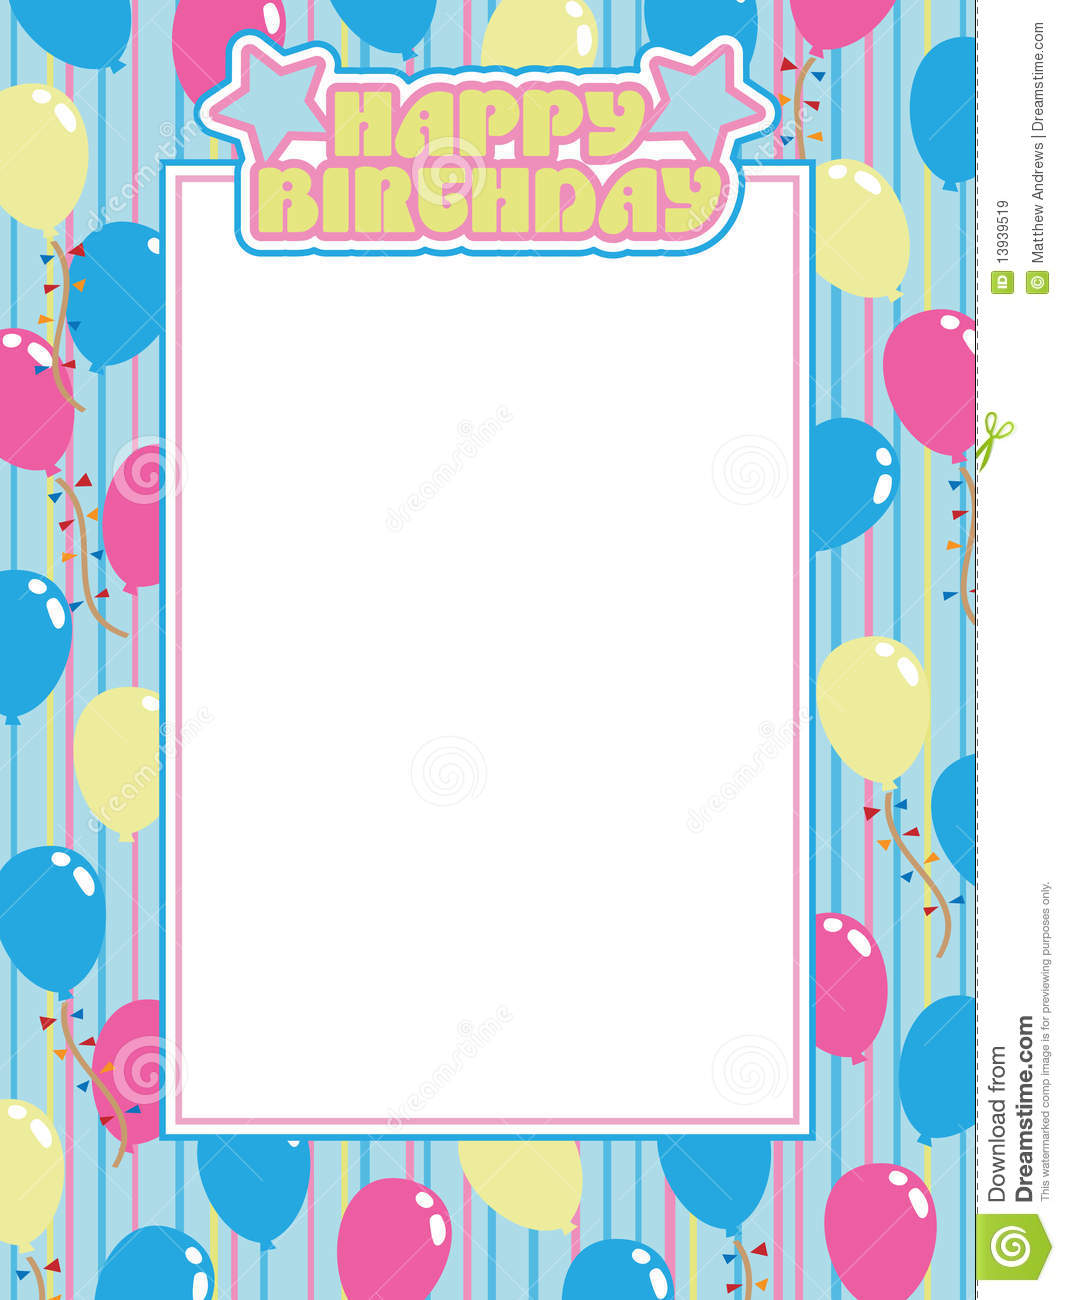 Birthday frame stock vector. Illustration of text, illustration ...